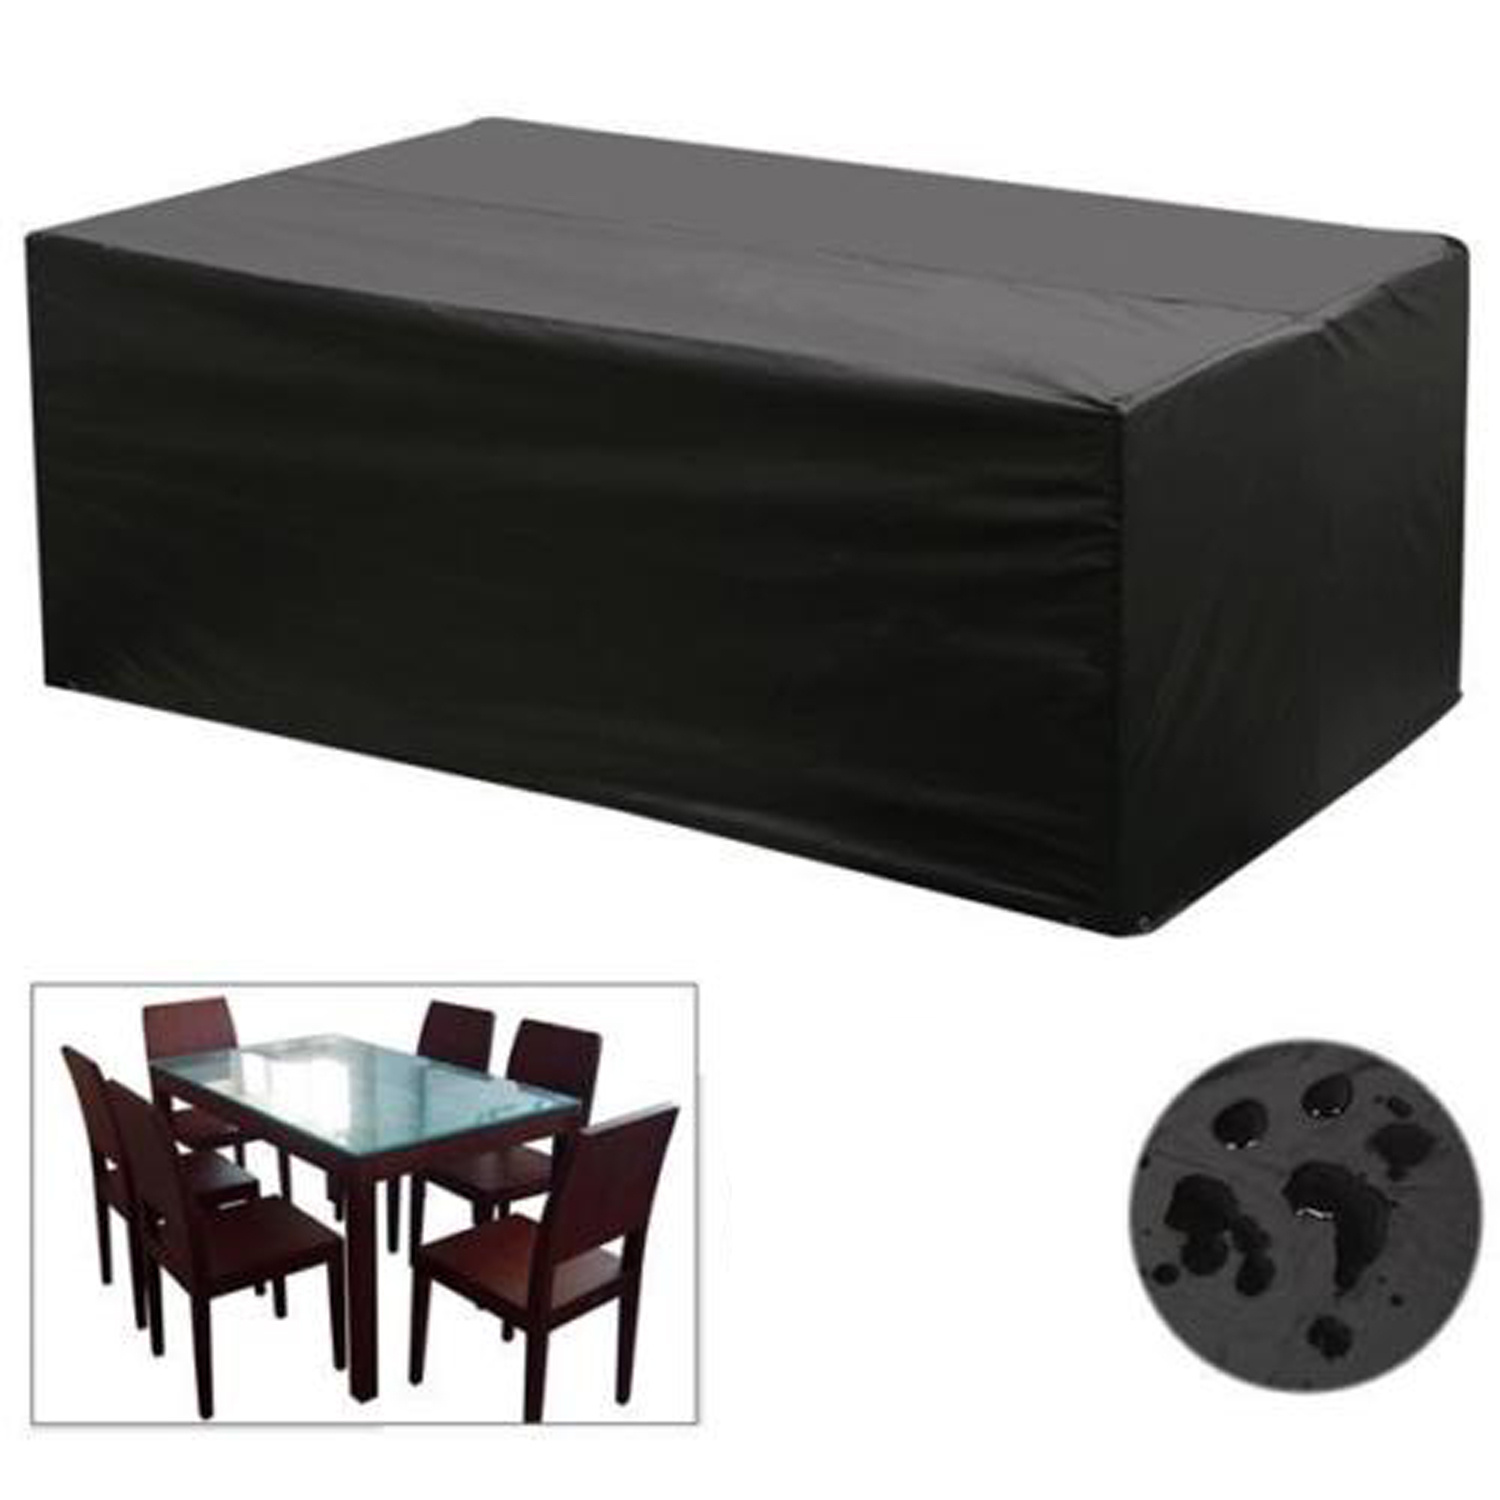 Black waterproof patio furniture cover for outdoor garden for Outdoor furniture covers in black